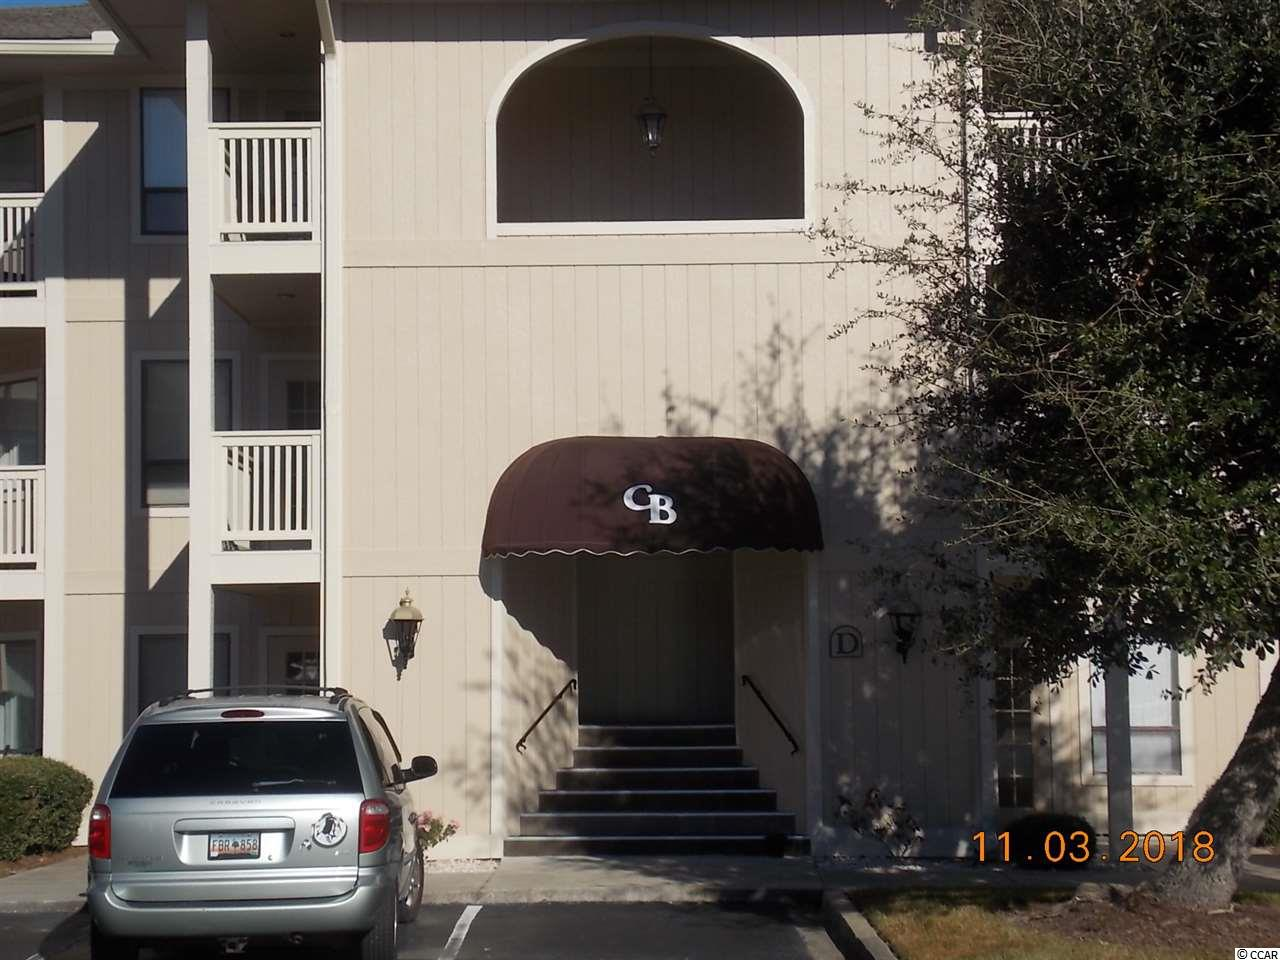 Spacious OPEN END CONDO UNIT with 2 Bedrooms, 2 Full Baths, 3 Balconies New Refrigerator, Microwave, Stove, Like new carpet thru out unit. Large Brick Fireplace with mantle, Porch in front and back of unit (off bedroom) over looking a pond. On second Floor with easy gradual stairs to get furniture in. Community Pool and tennis court. Closes to Restaurants, shopping, golf courses, 5 minutes to beach and CVS is a crossed the street. Close to the border of NC. GREAT UNIT FOR A SECOND HOME, INVESTMENT, & HOME.